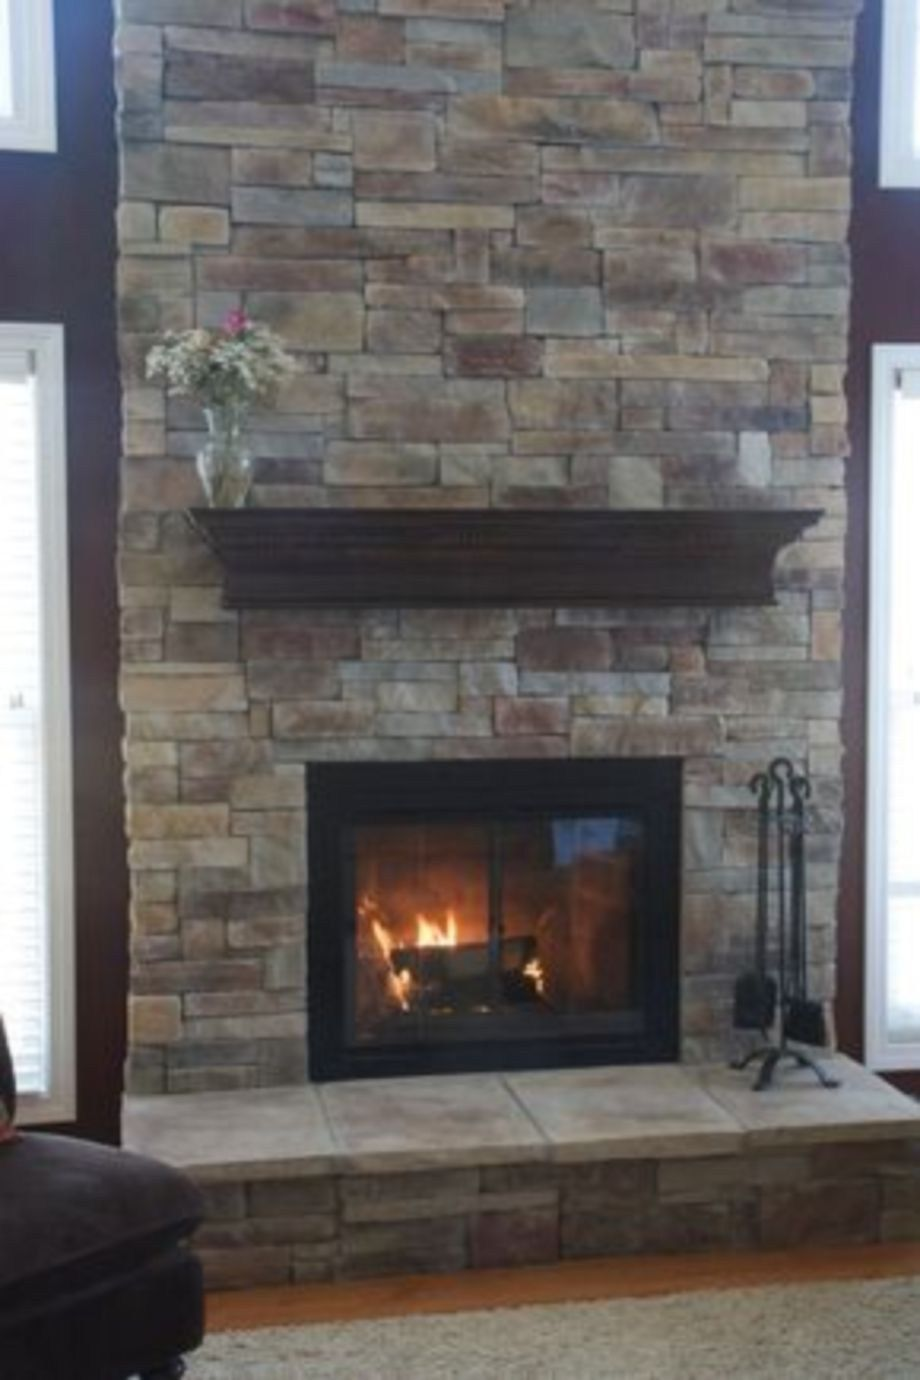 Incredible diy brick fireplace makeover ideas fireplaces